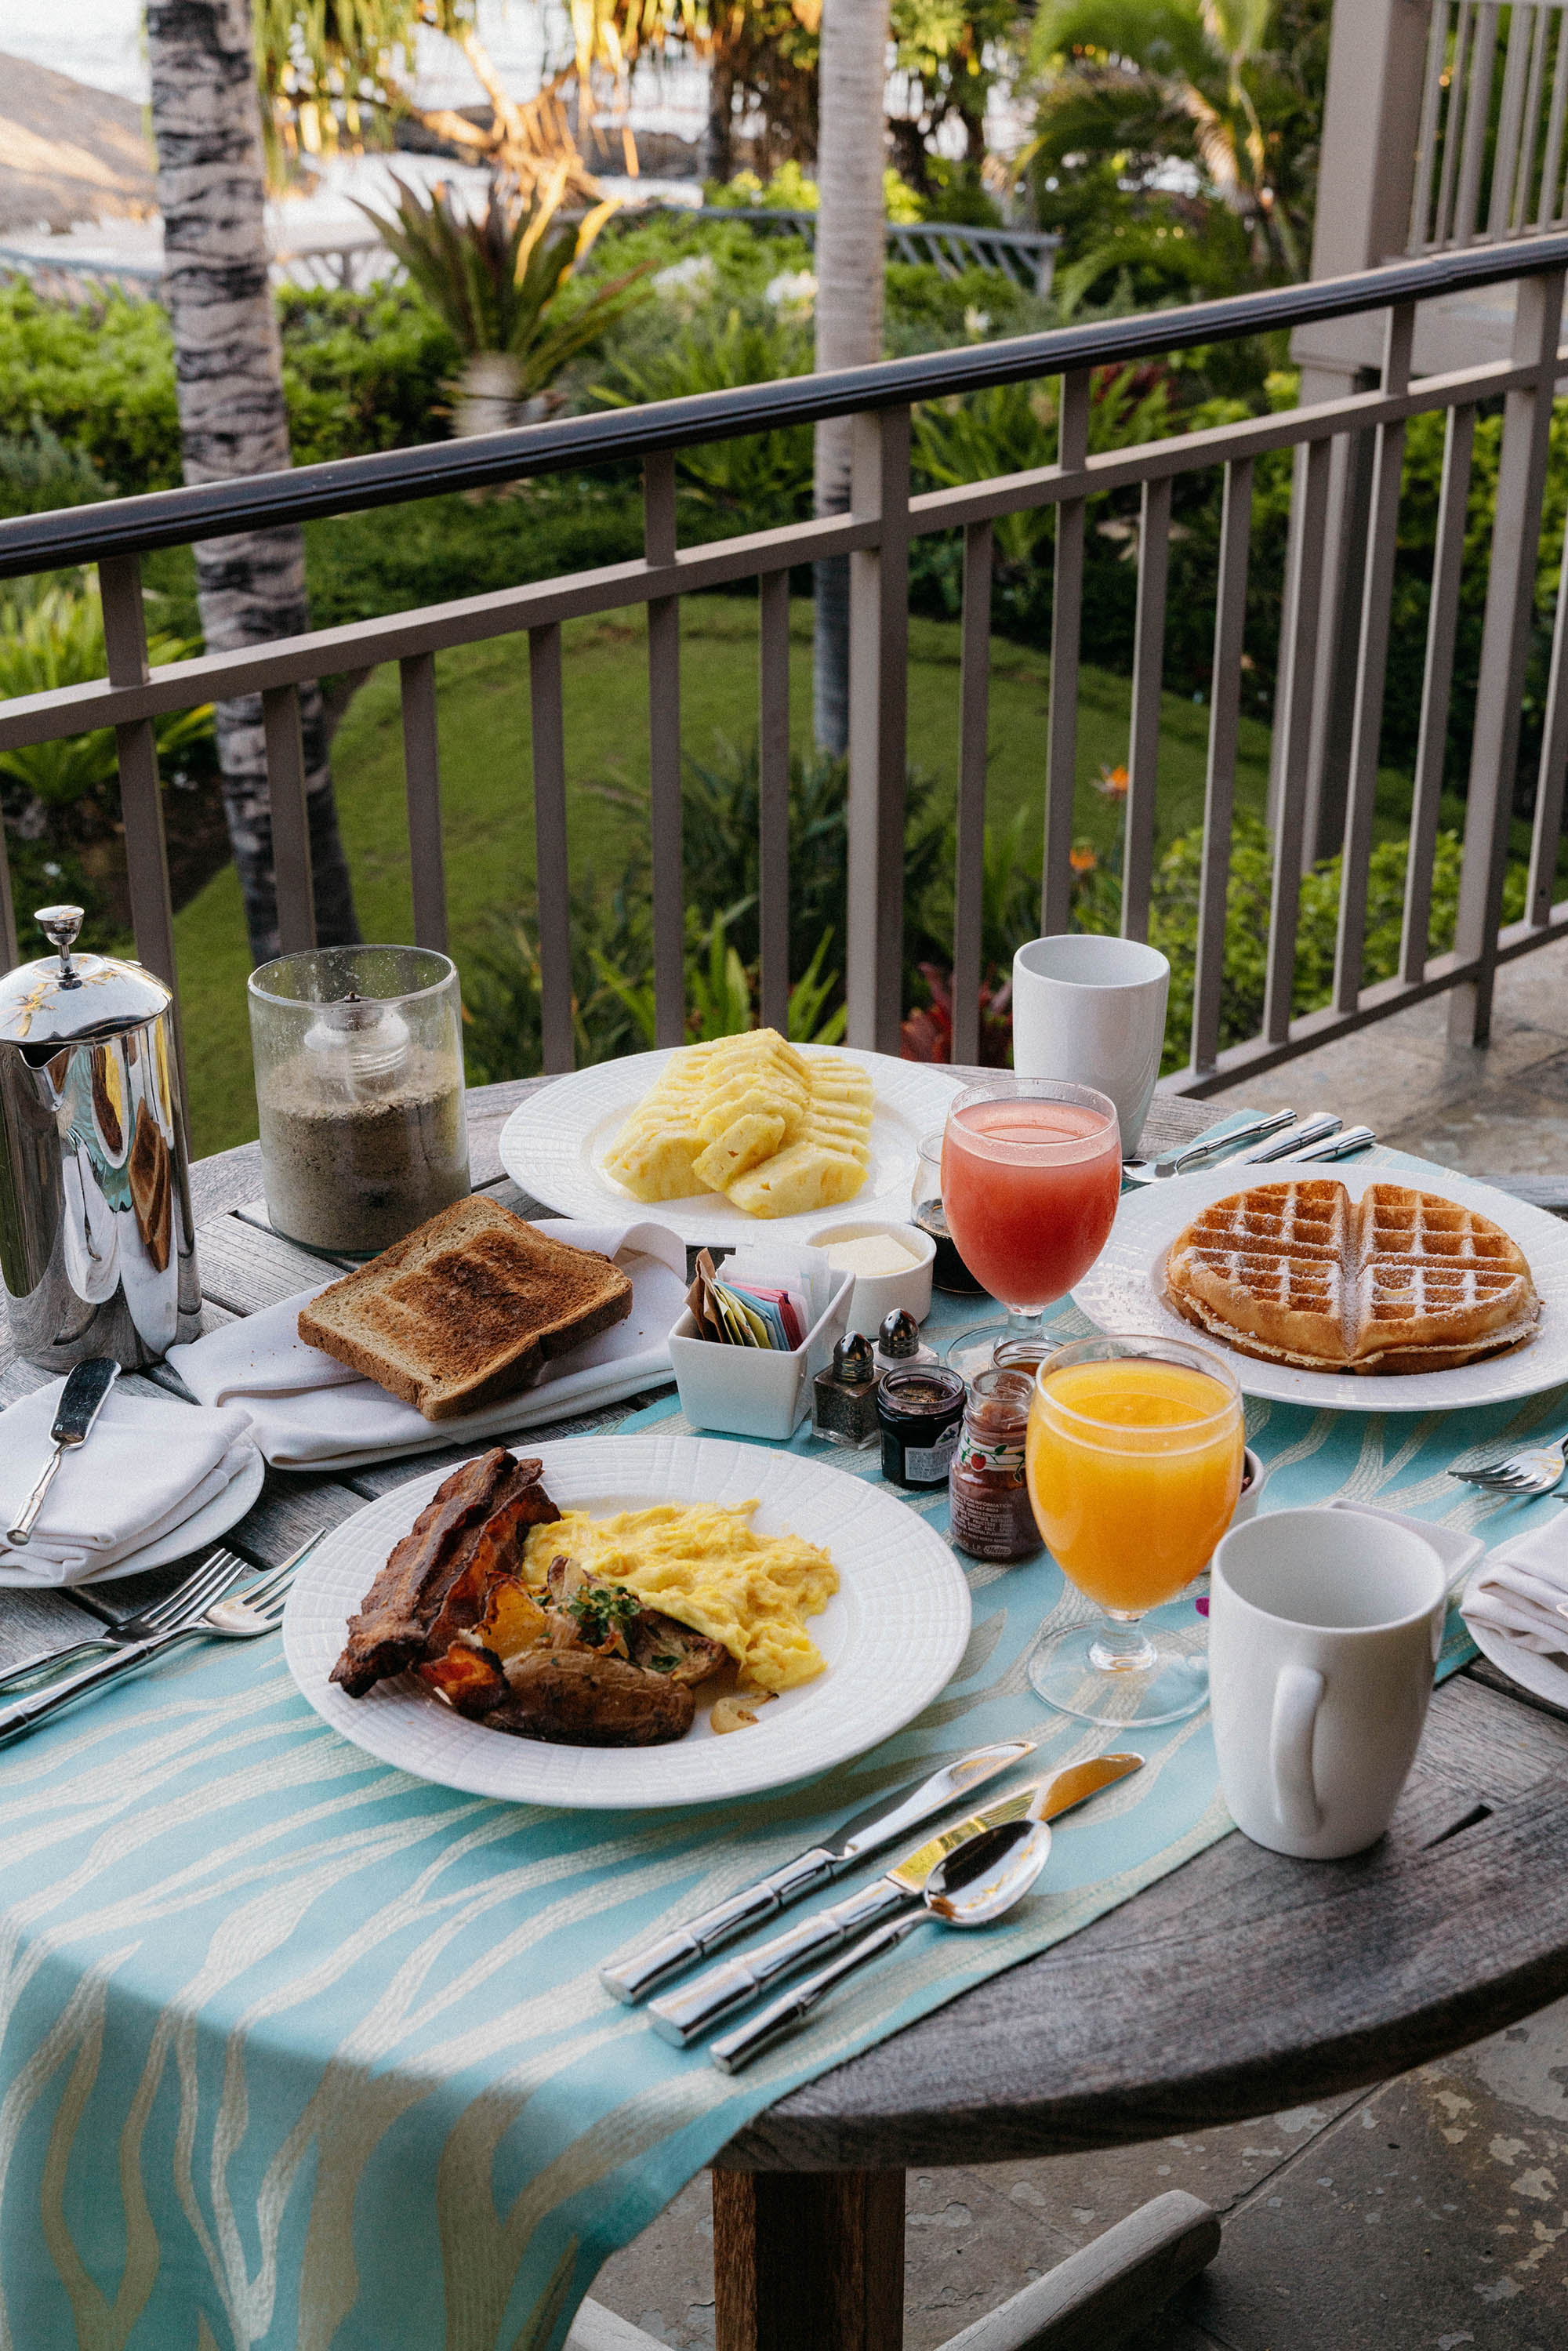 First morning breakfast on the terrace – started off with classic dishes